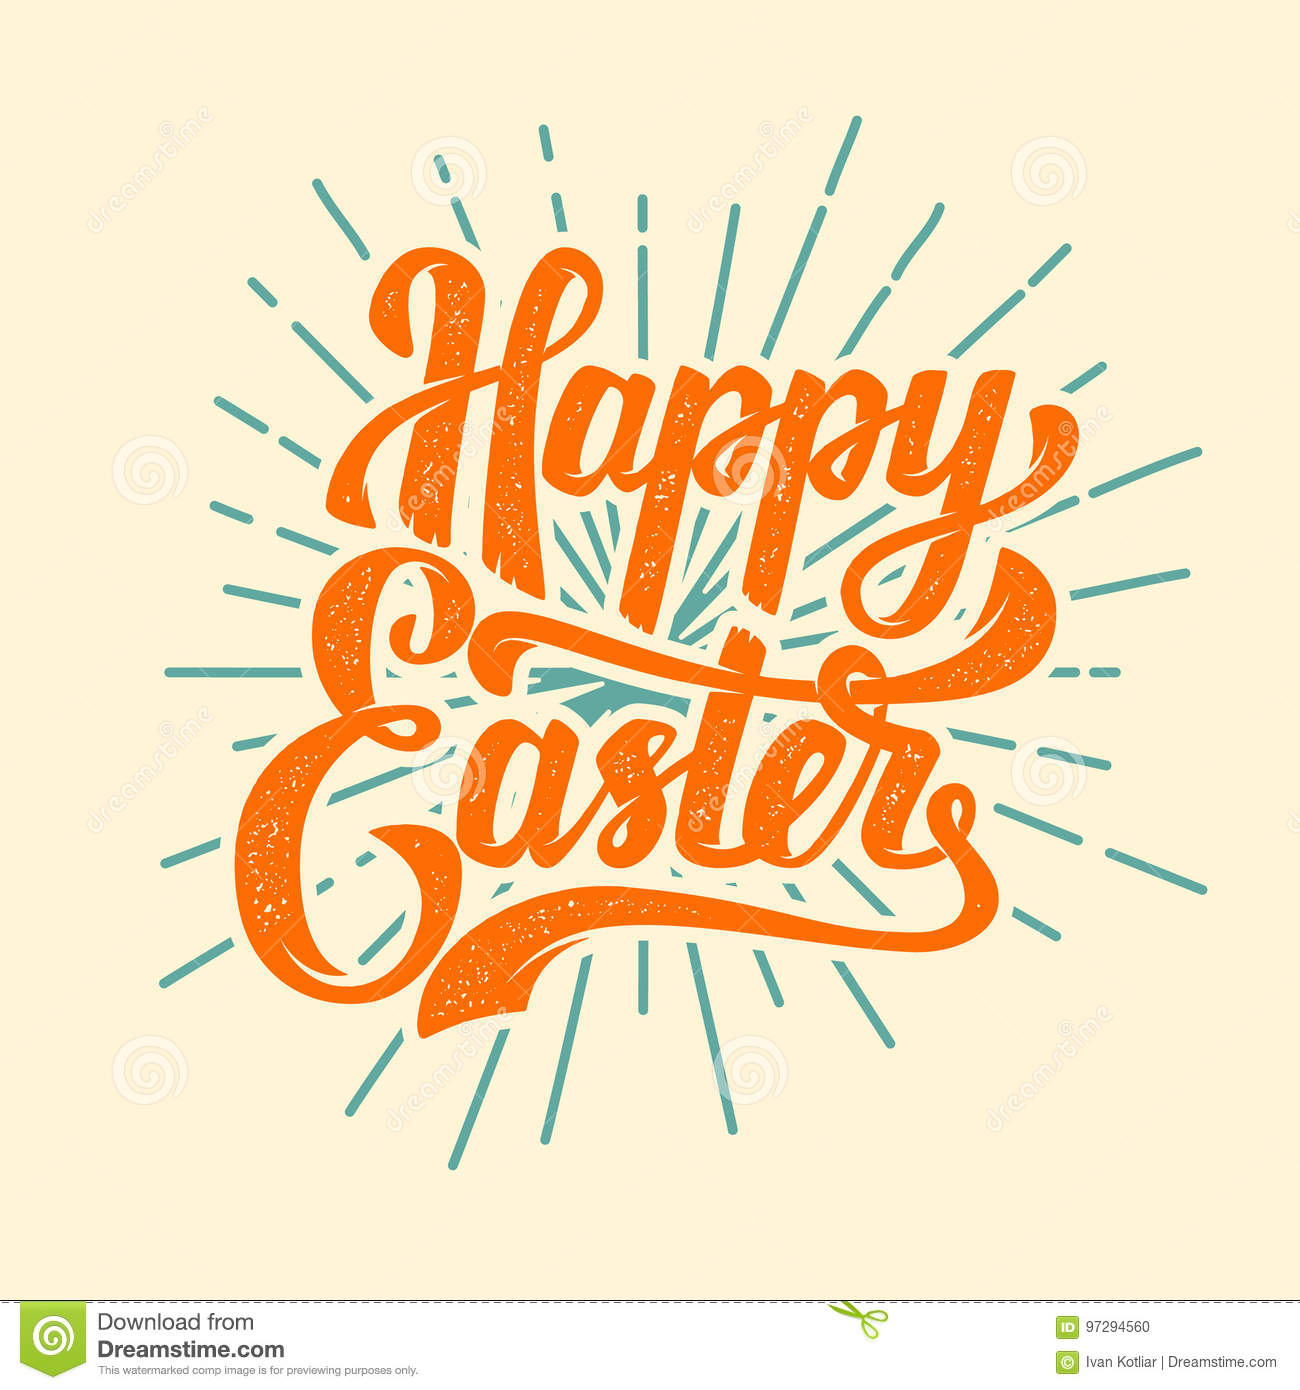 Happy Easter Hand Drawn Lettering Phrase Design Elements For P